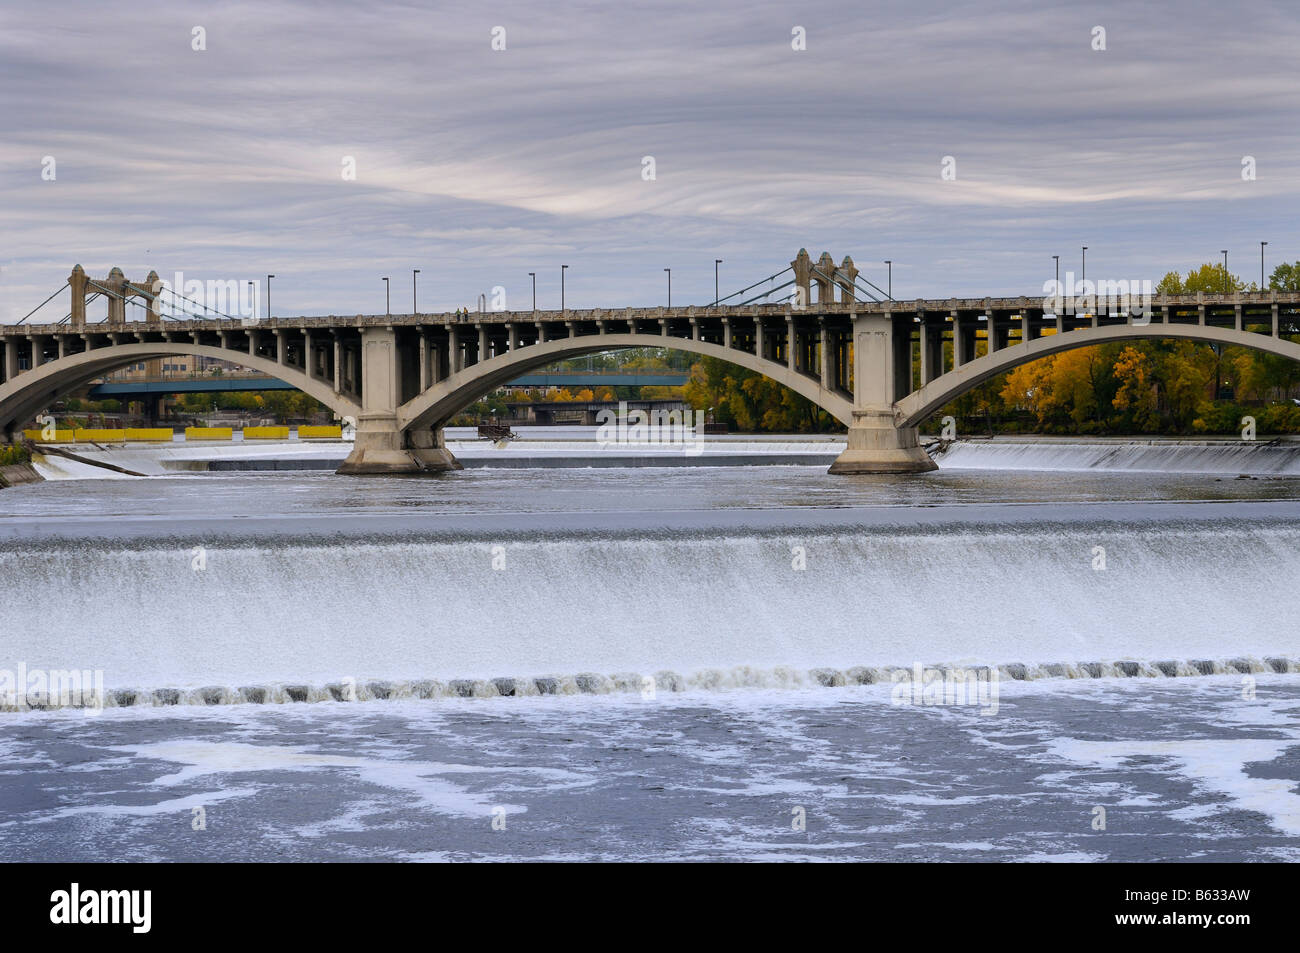 St Anthony Falls on the Mississippi river in Minneapolis with the Third Avenue bridge and inverted wave storm clouds - Stock Image